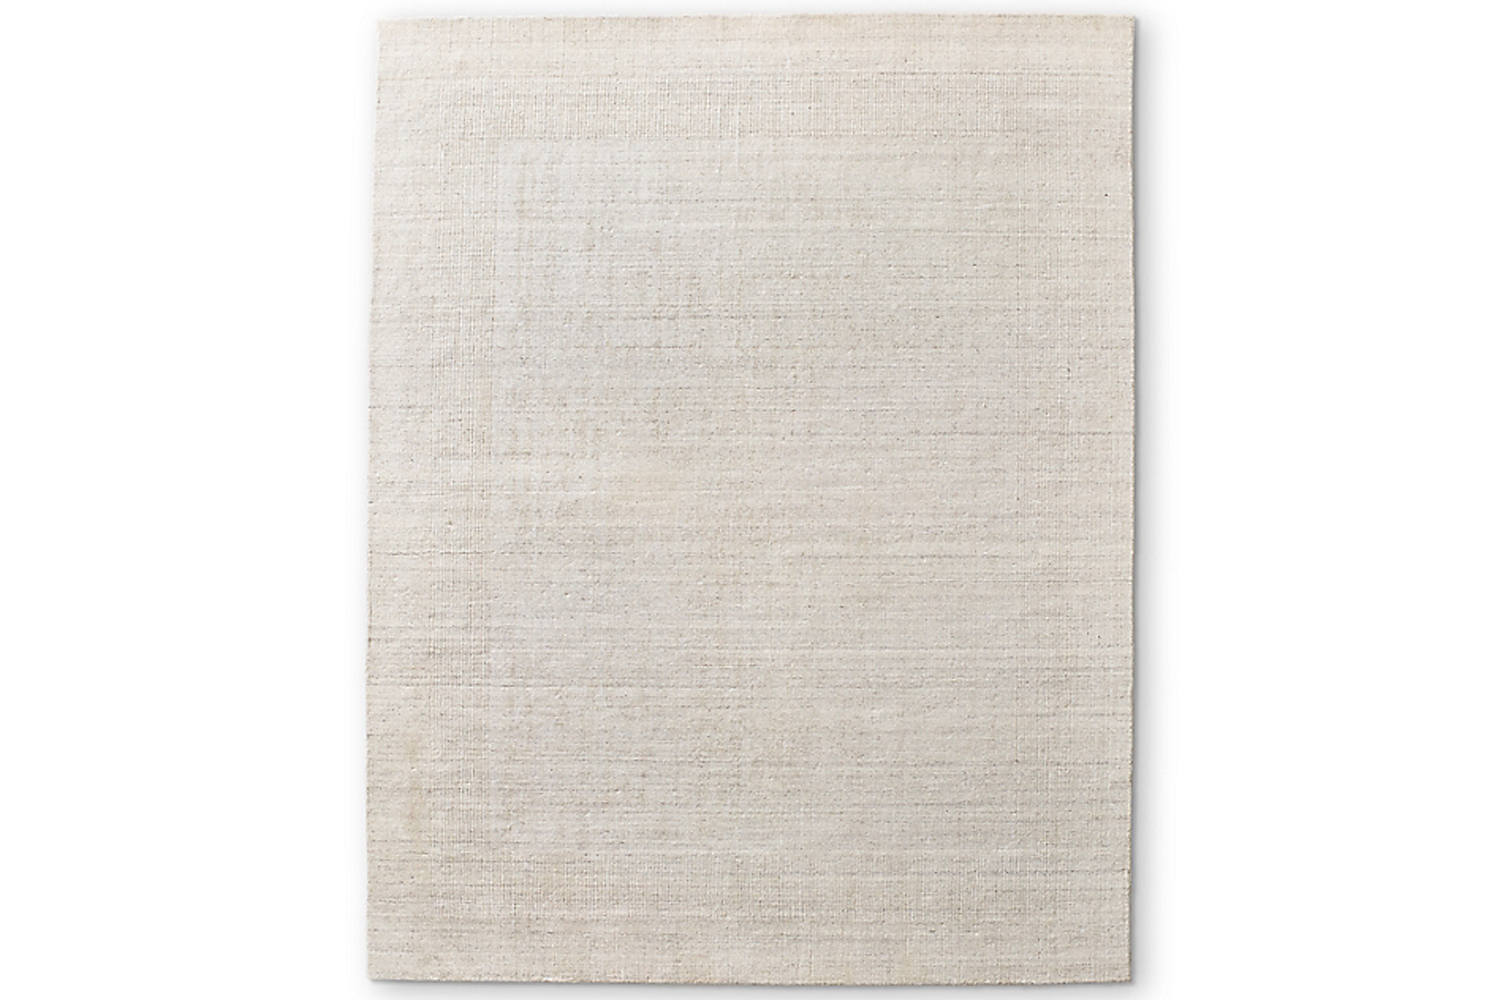 the natim handwoven rug is \$\2,\245 to \$8,305 at restoration hardware. 19